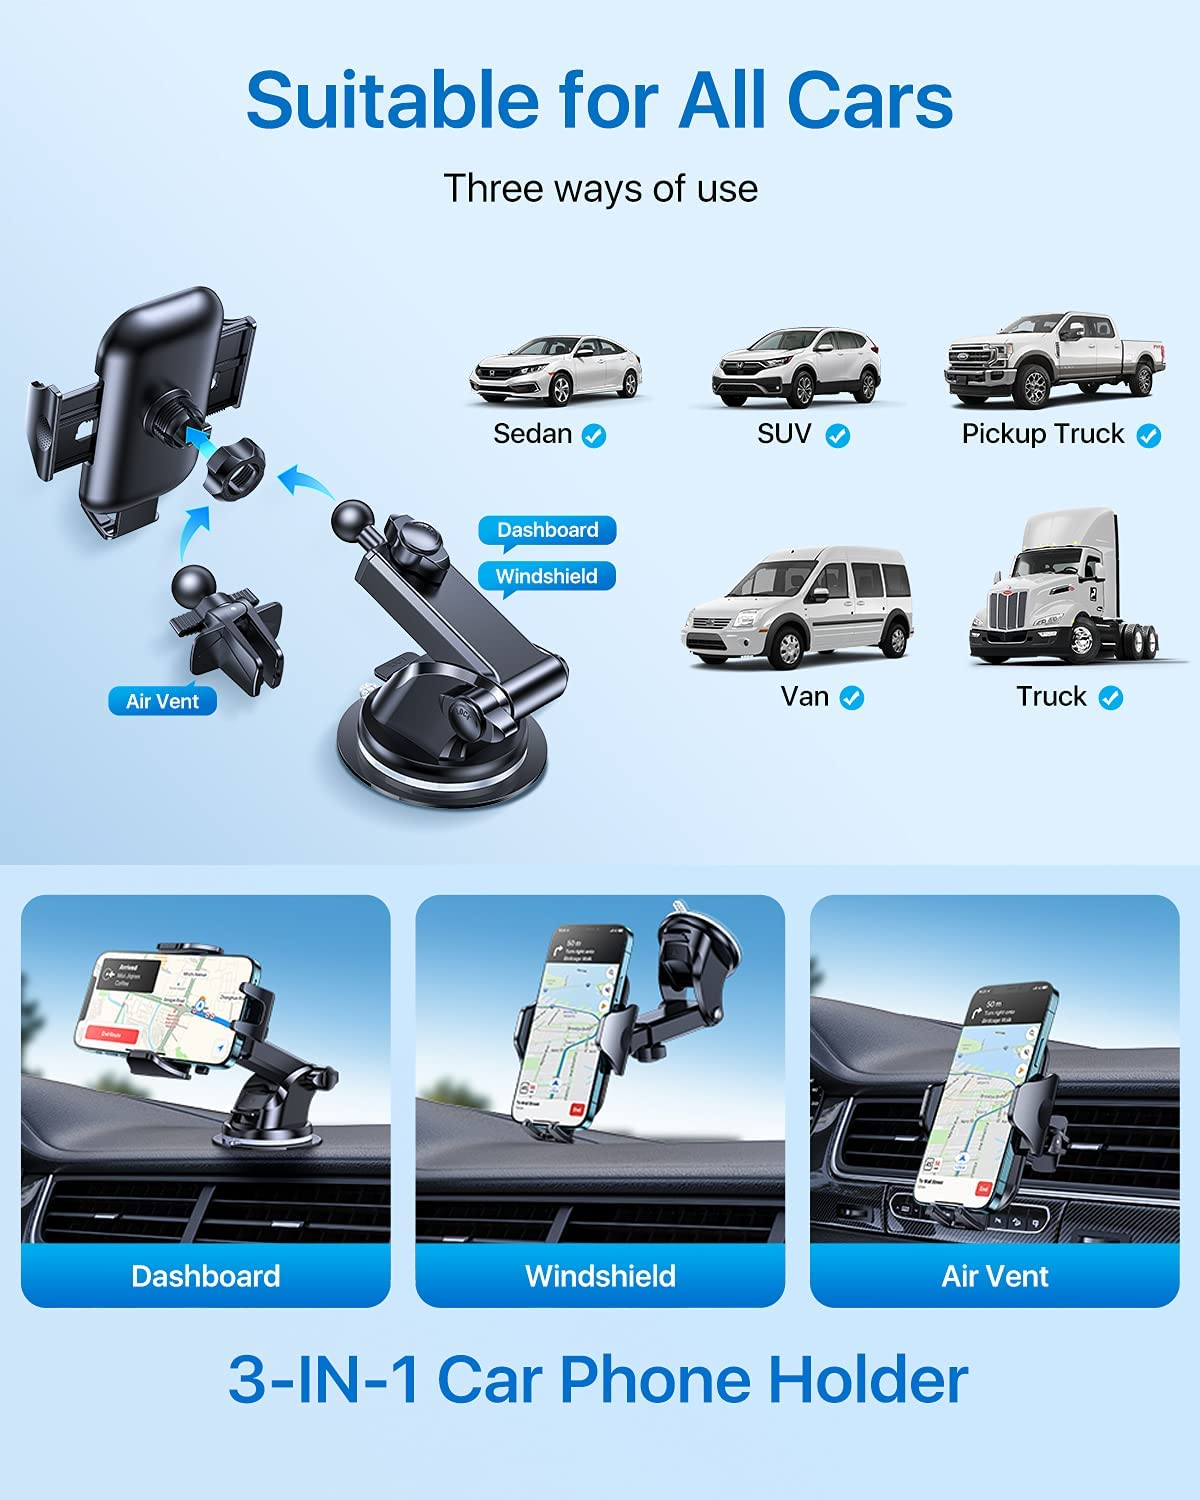 What are the benefits of using phone holders